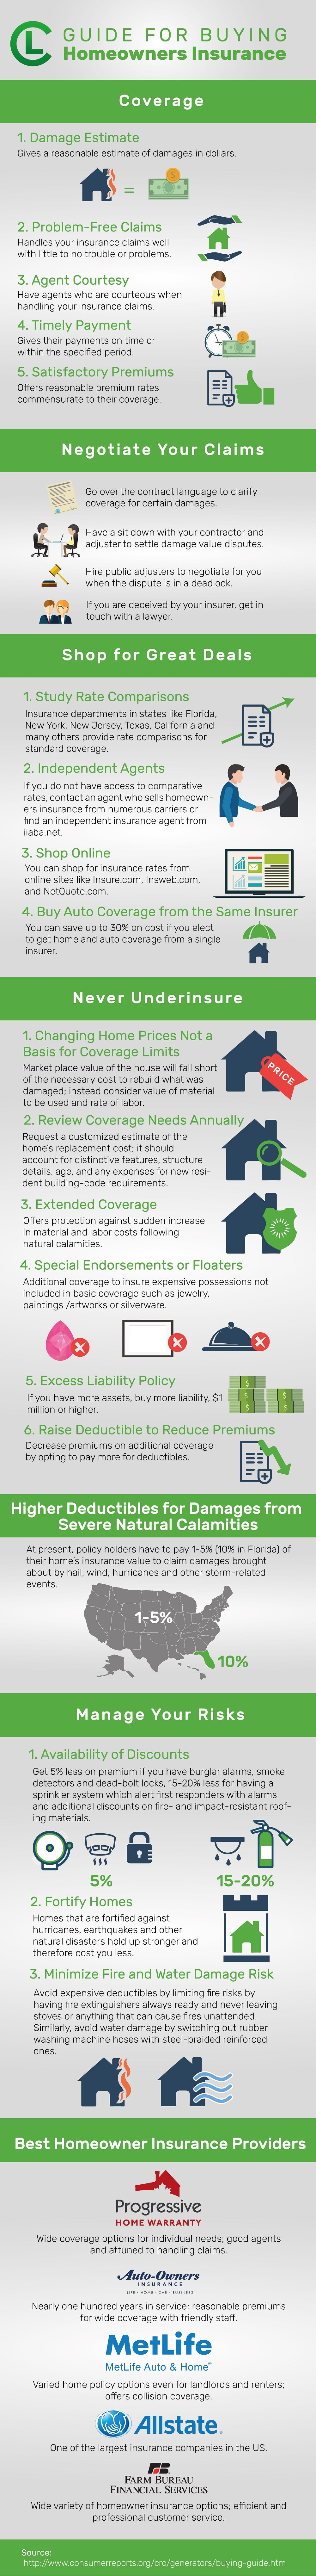 Guide For Buying Home Insurance Infographic